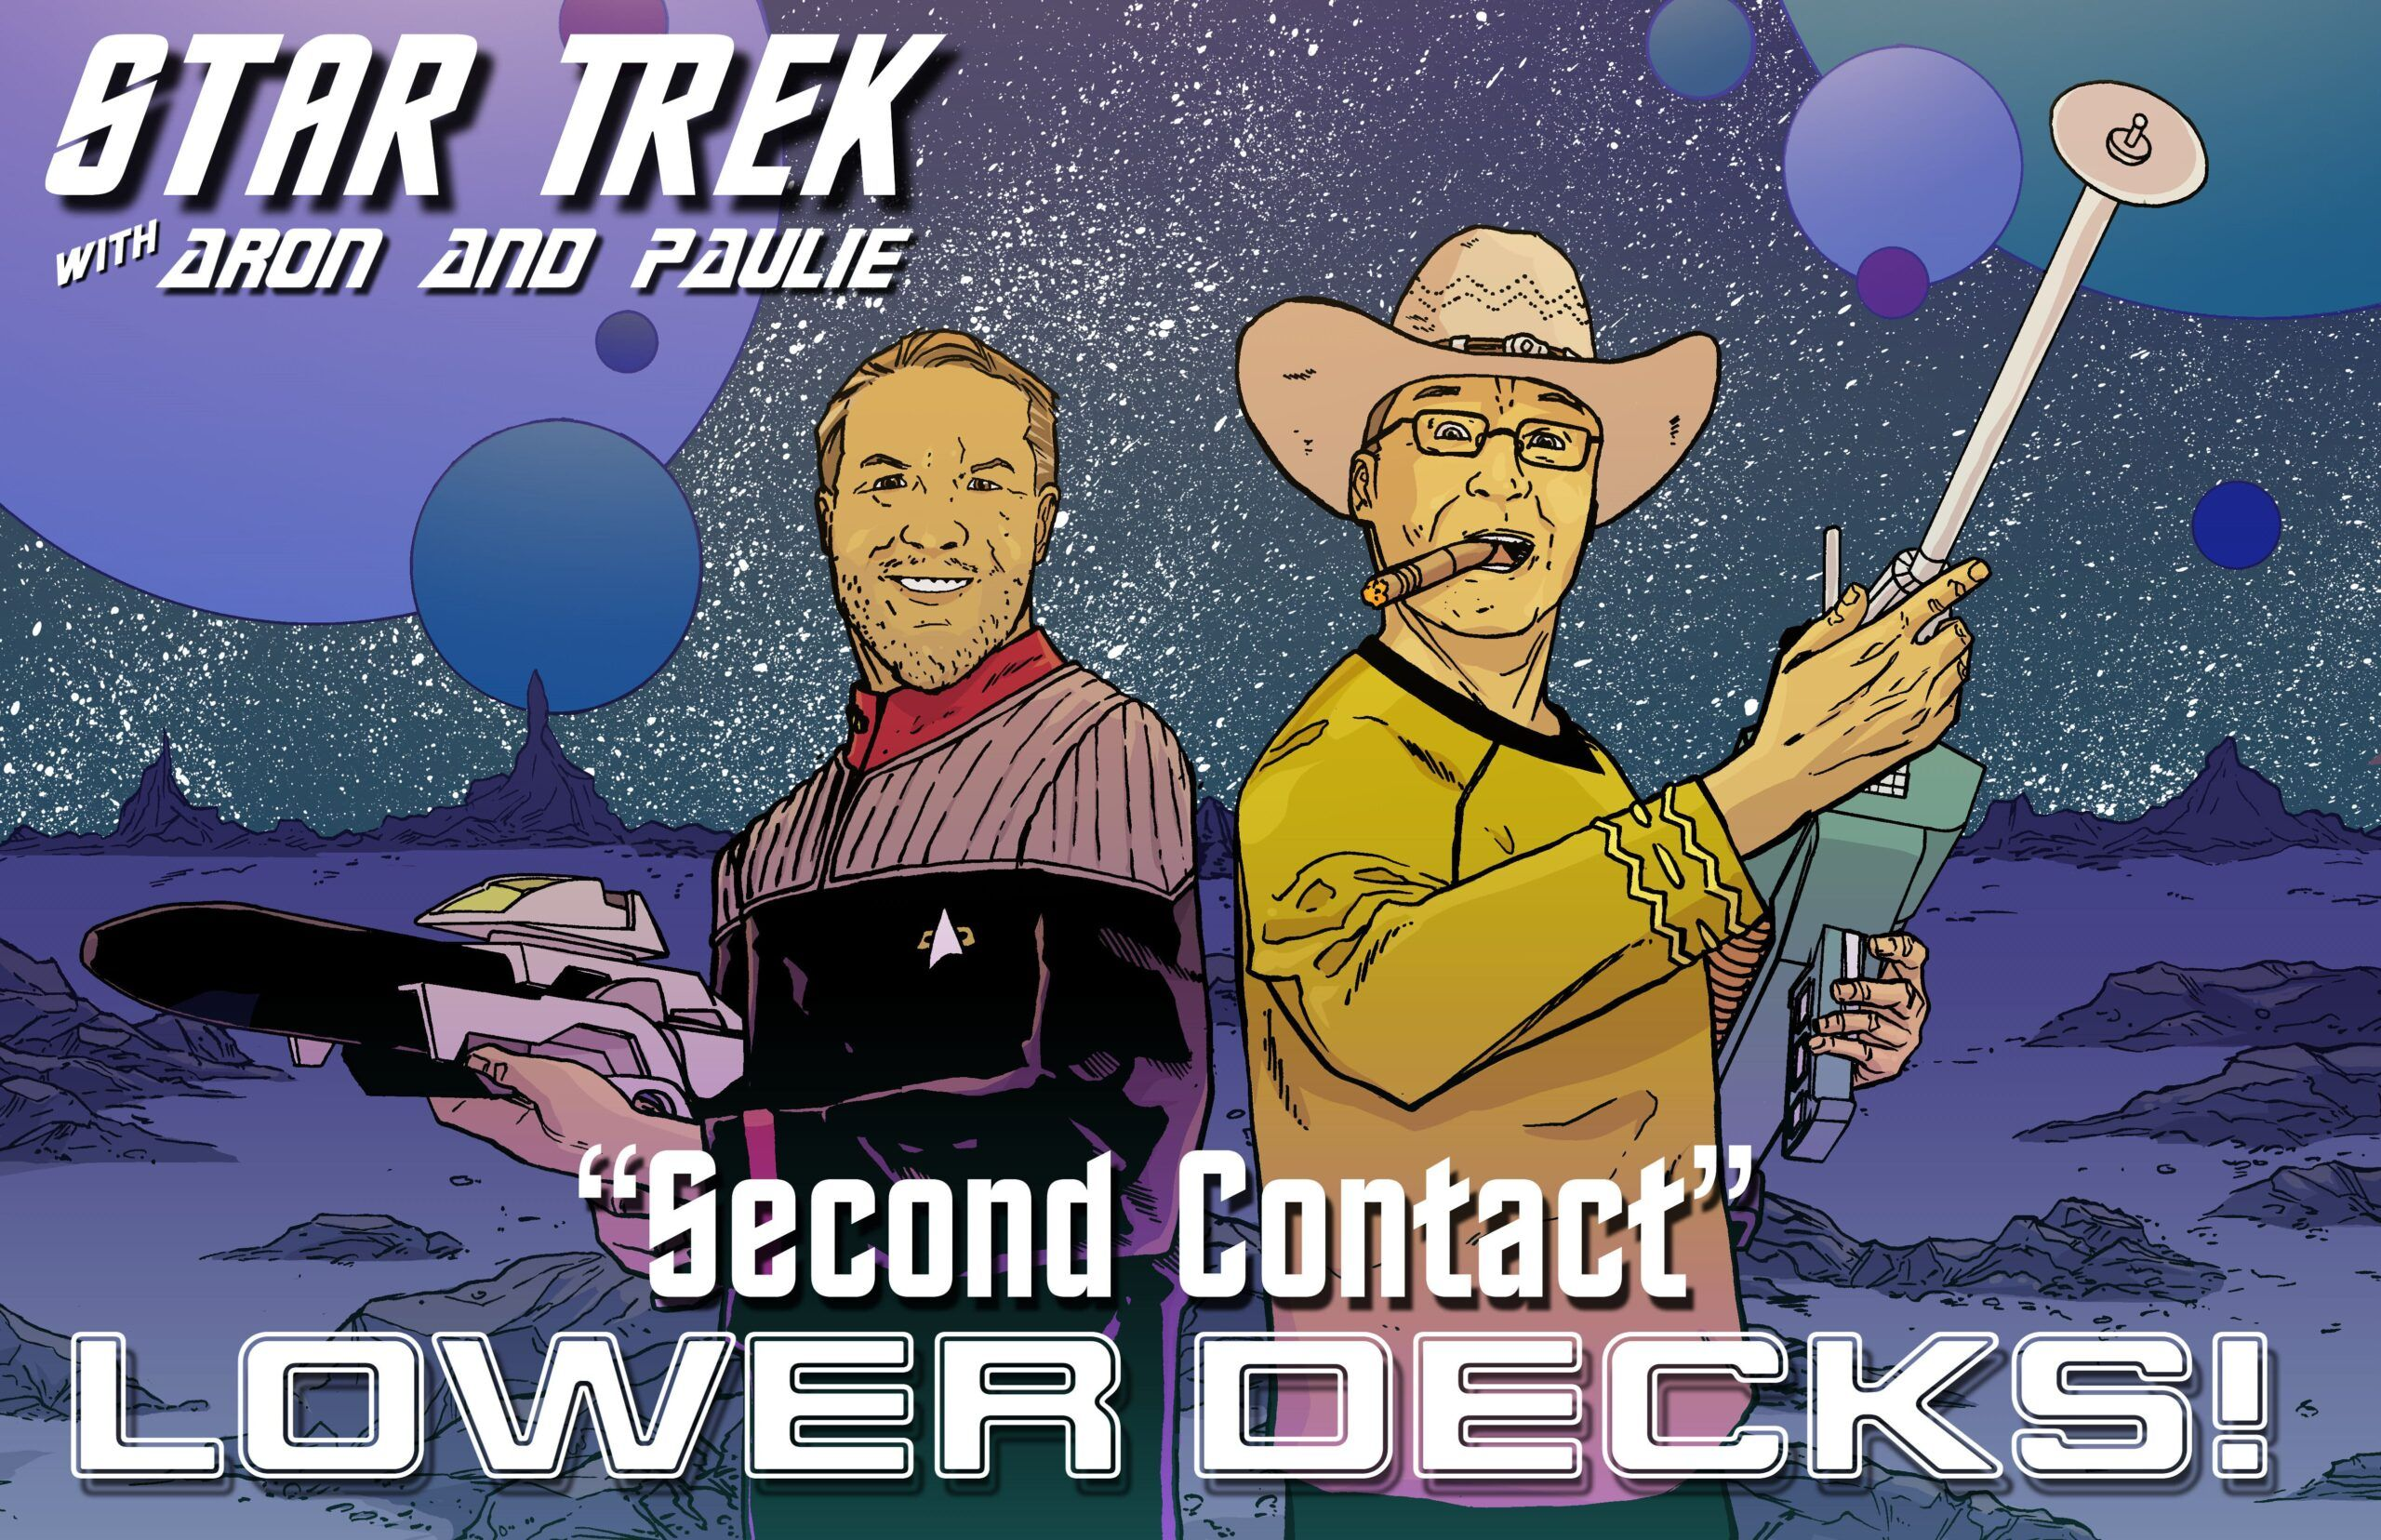 Lower Decks, Second Contact